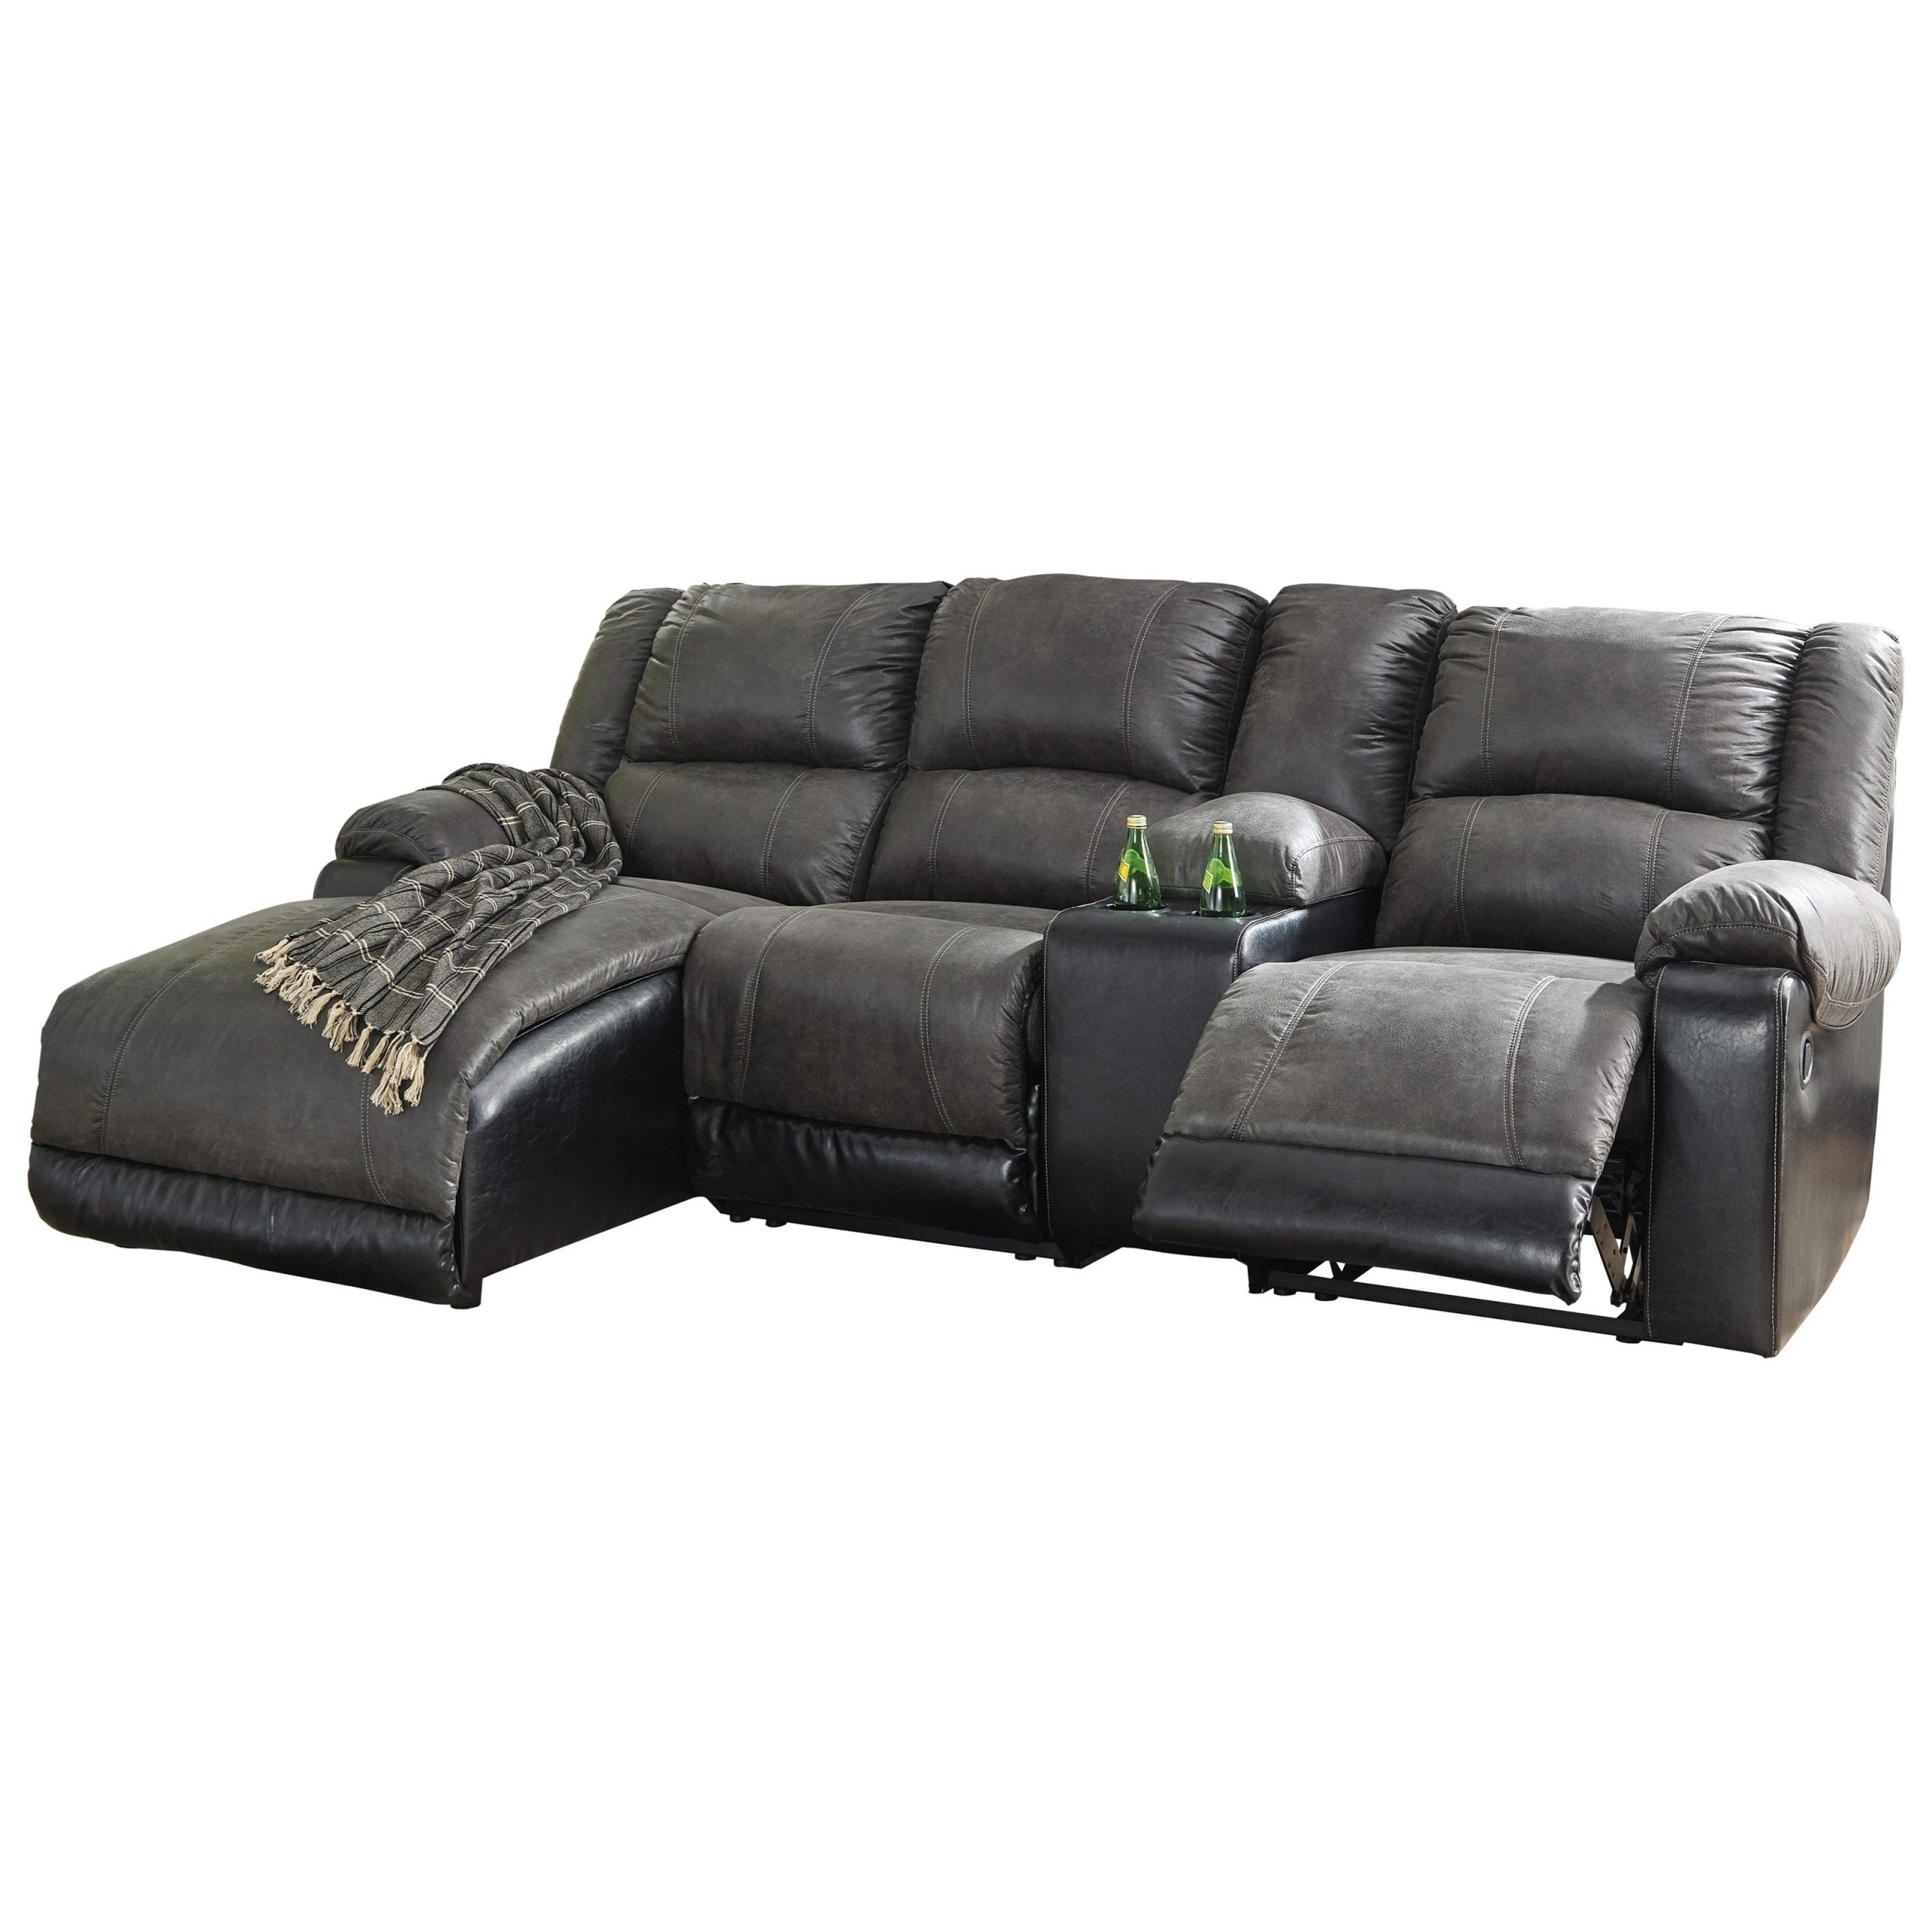 Signature Designashley Nantahala Reclining Chaise Sofa With Regard To Recent Palisades Reclining Sectional Sofas With Left Storage Chaise (View 17 of 20)